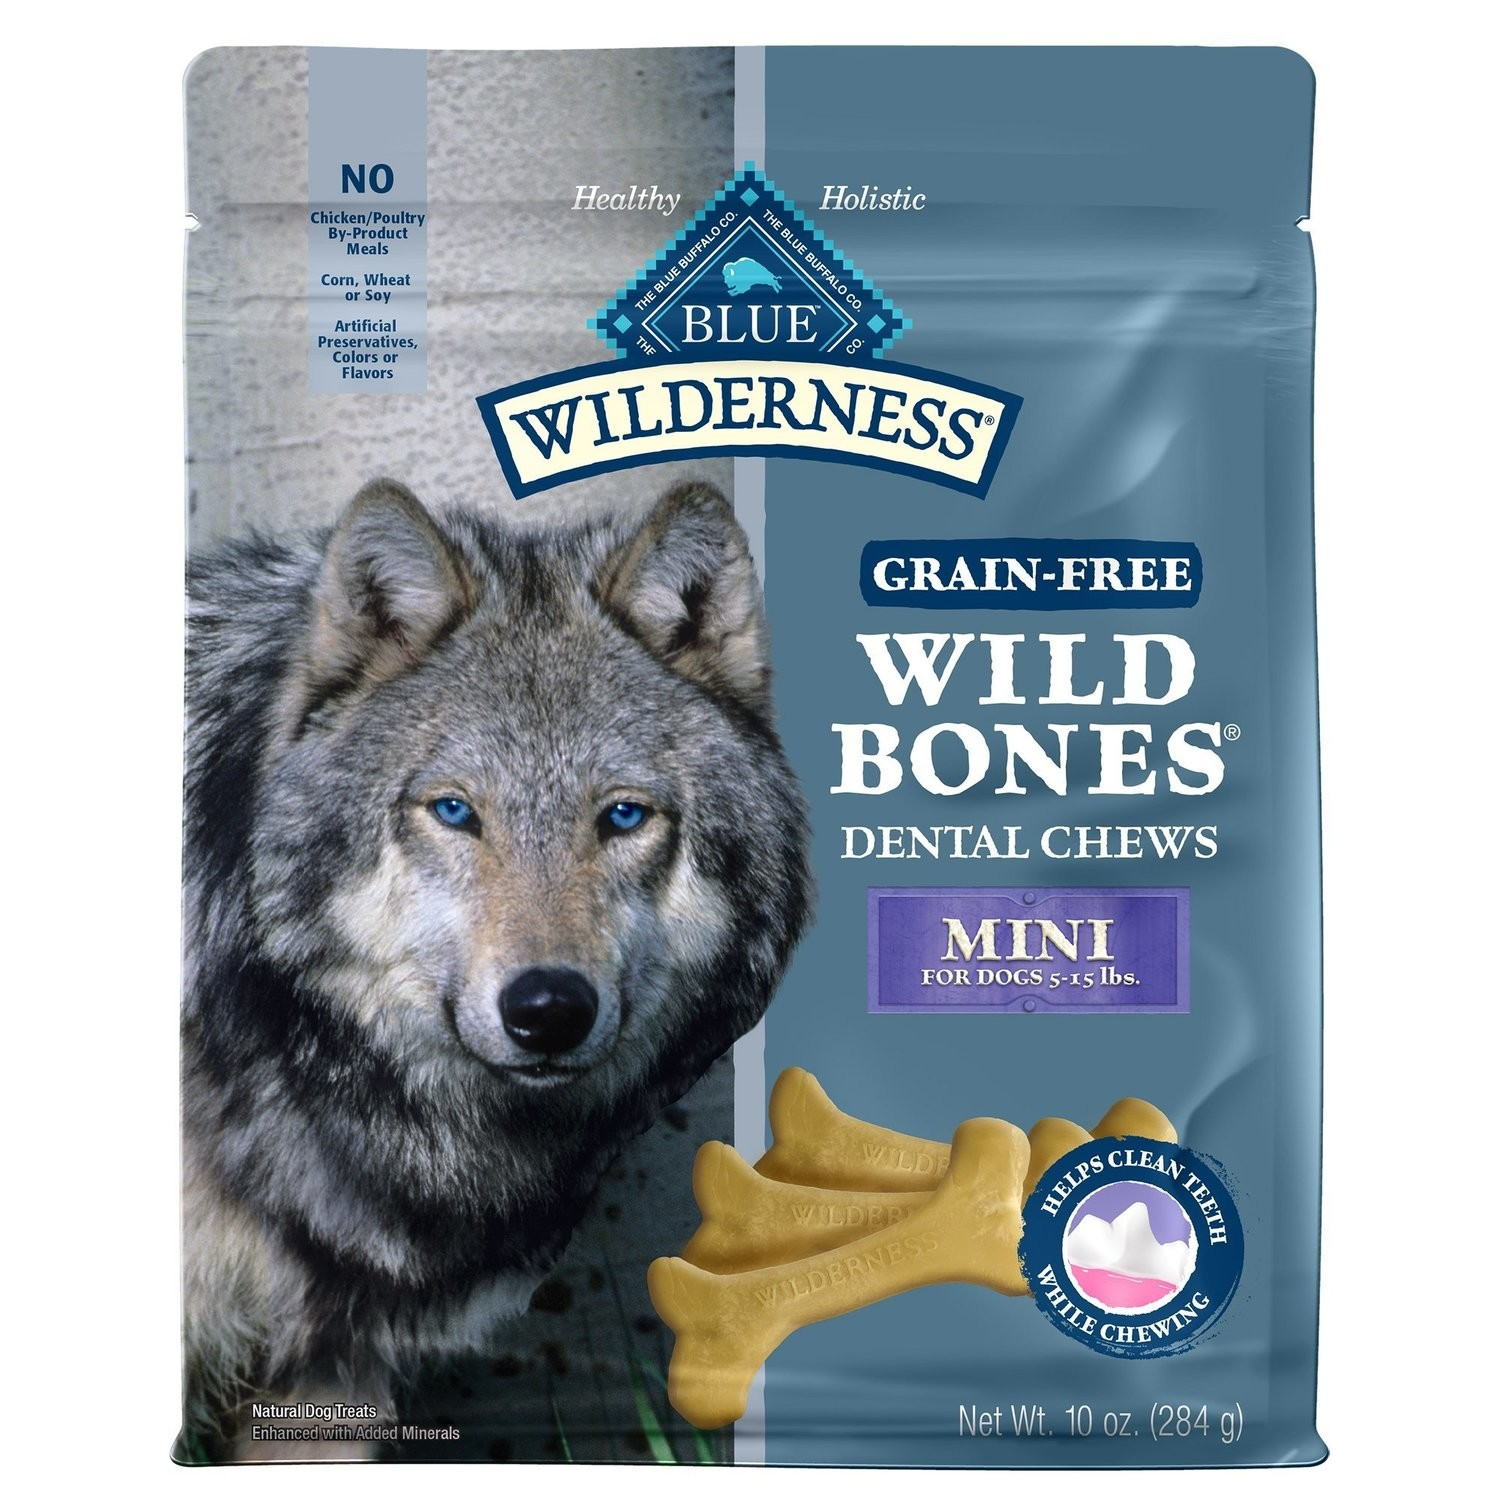 Blue Buffalo Wilderness Mini Wild Bones Dog Dental Chews, 10 oz.  (6/19) (T.F14/DT)